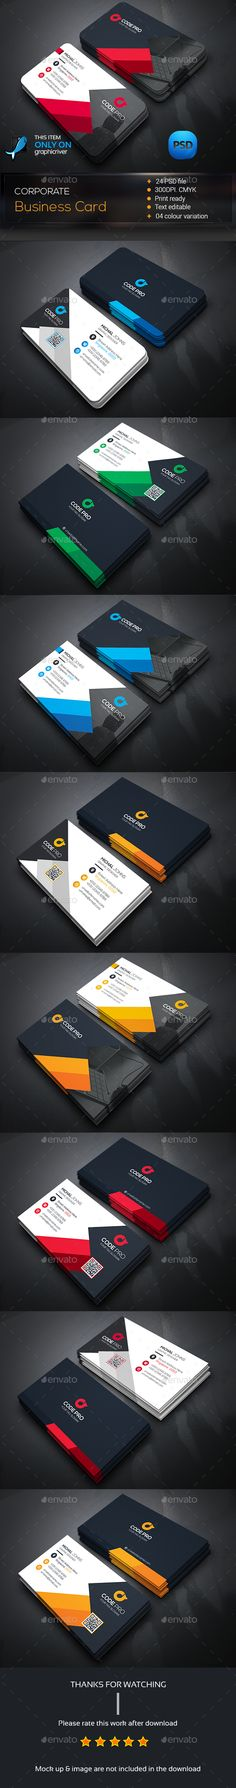 Creative Business Card Bundle — Photoshop PSD #blue #landscape • Available here → https://graphicriver.net/item/creative-business-card-bundle/14428694?ref=pxcr